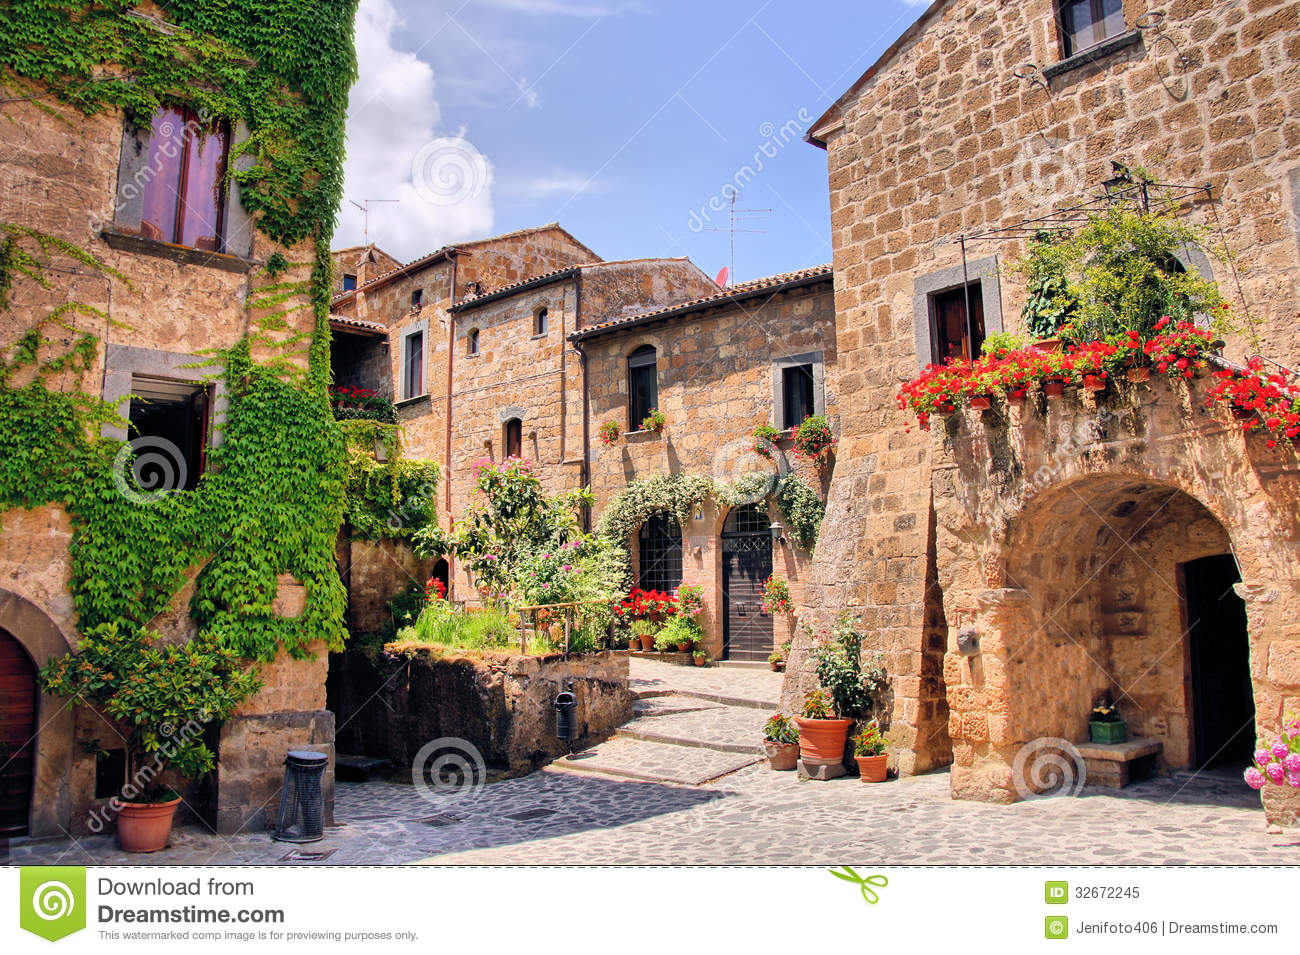 Italian village stock image image of courtyard exterior for Village town